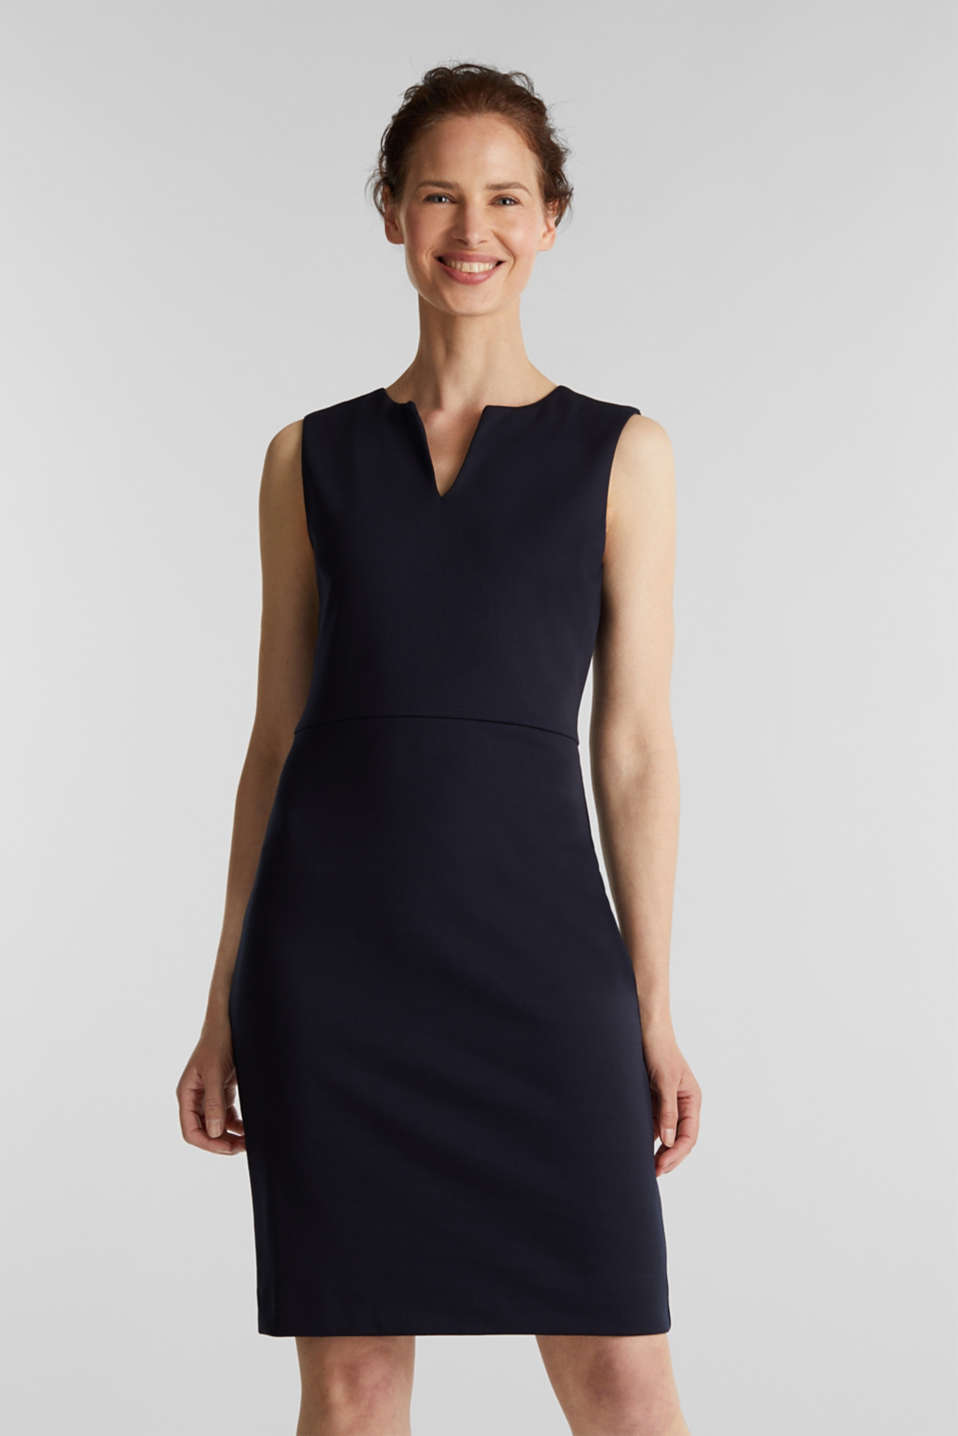 Esprit - Sheath dress made of stretch jersey